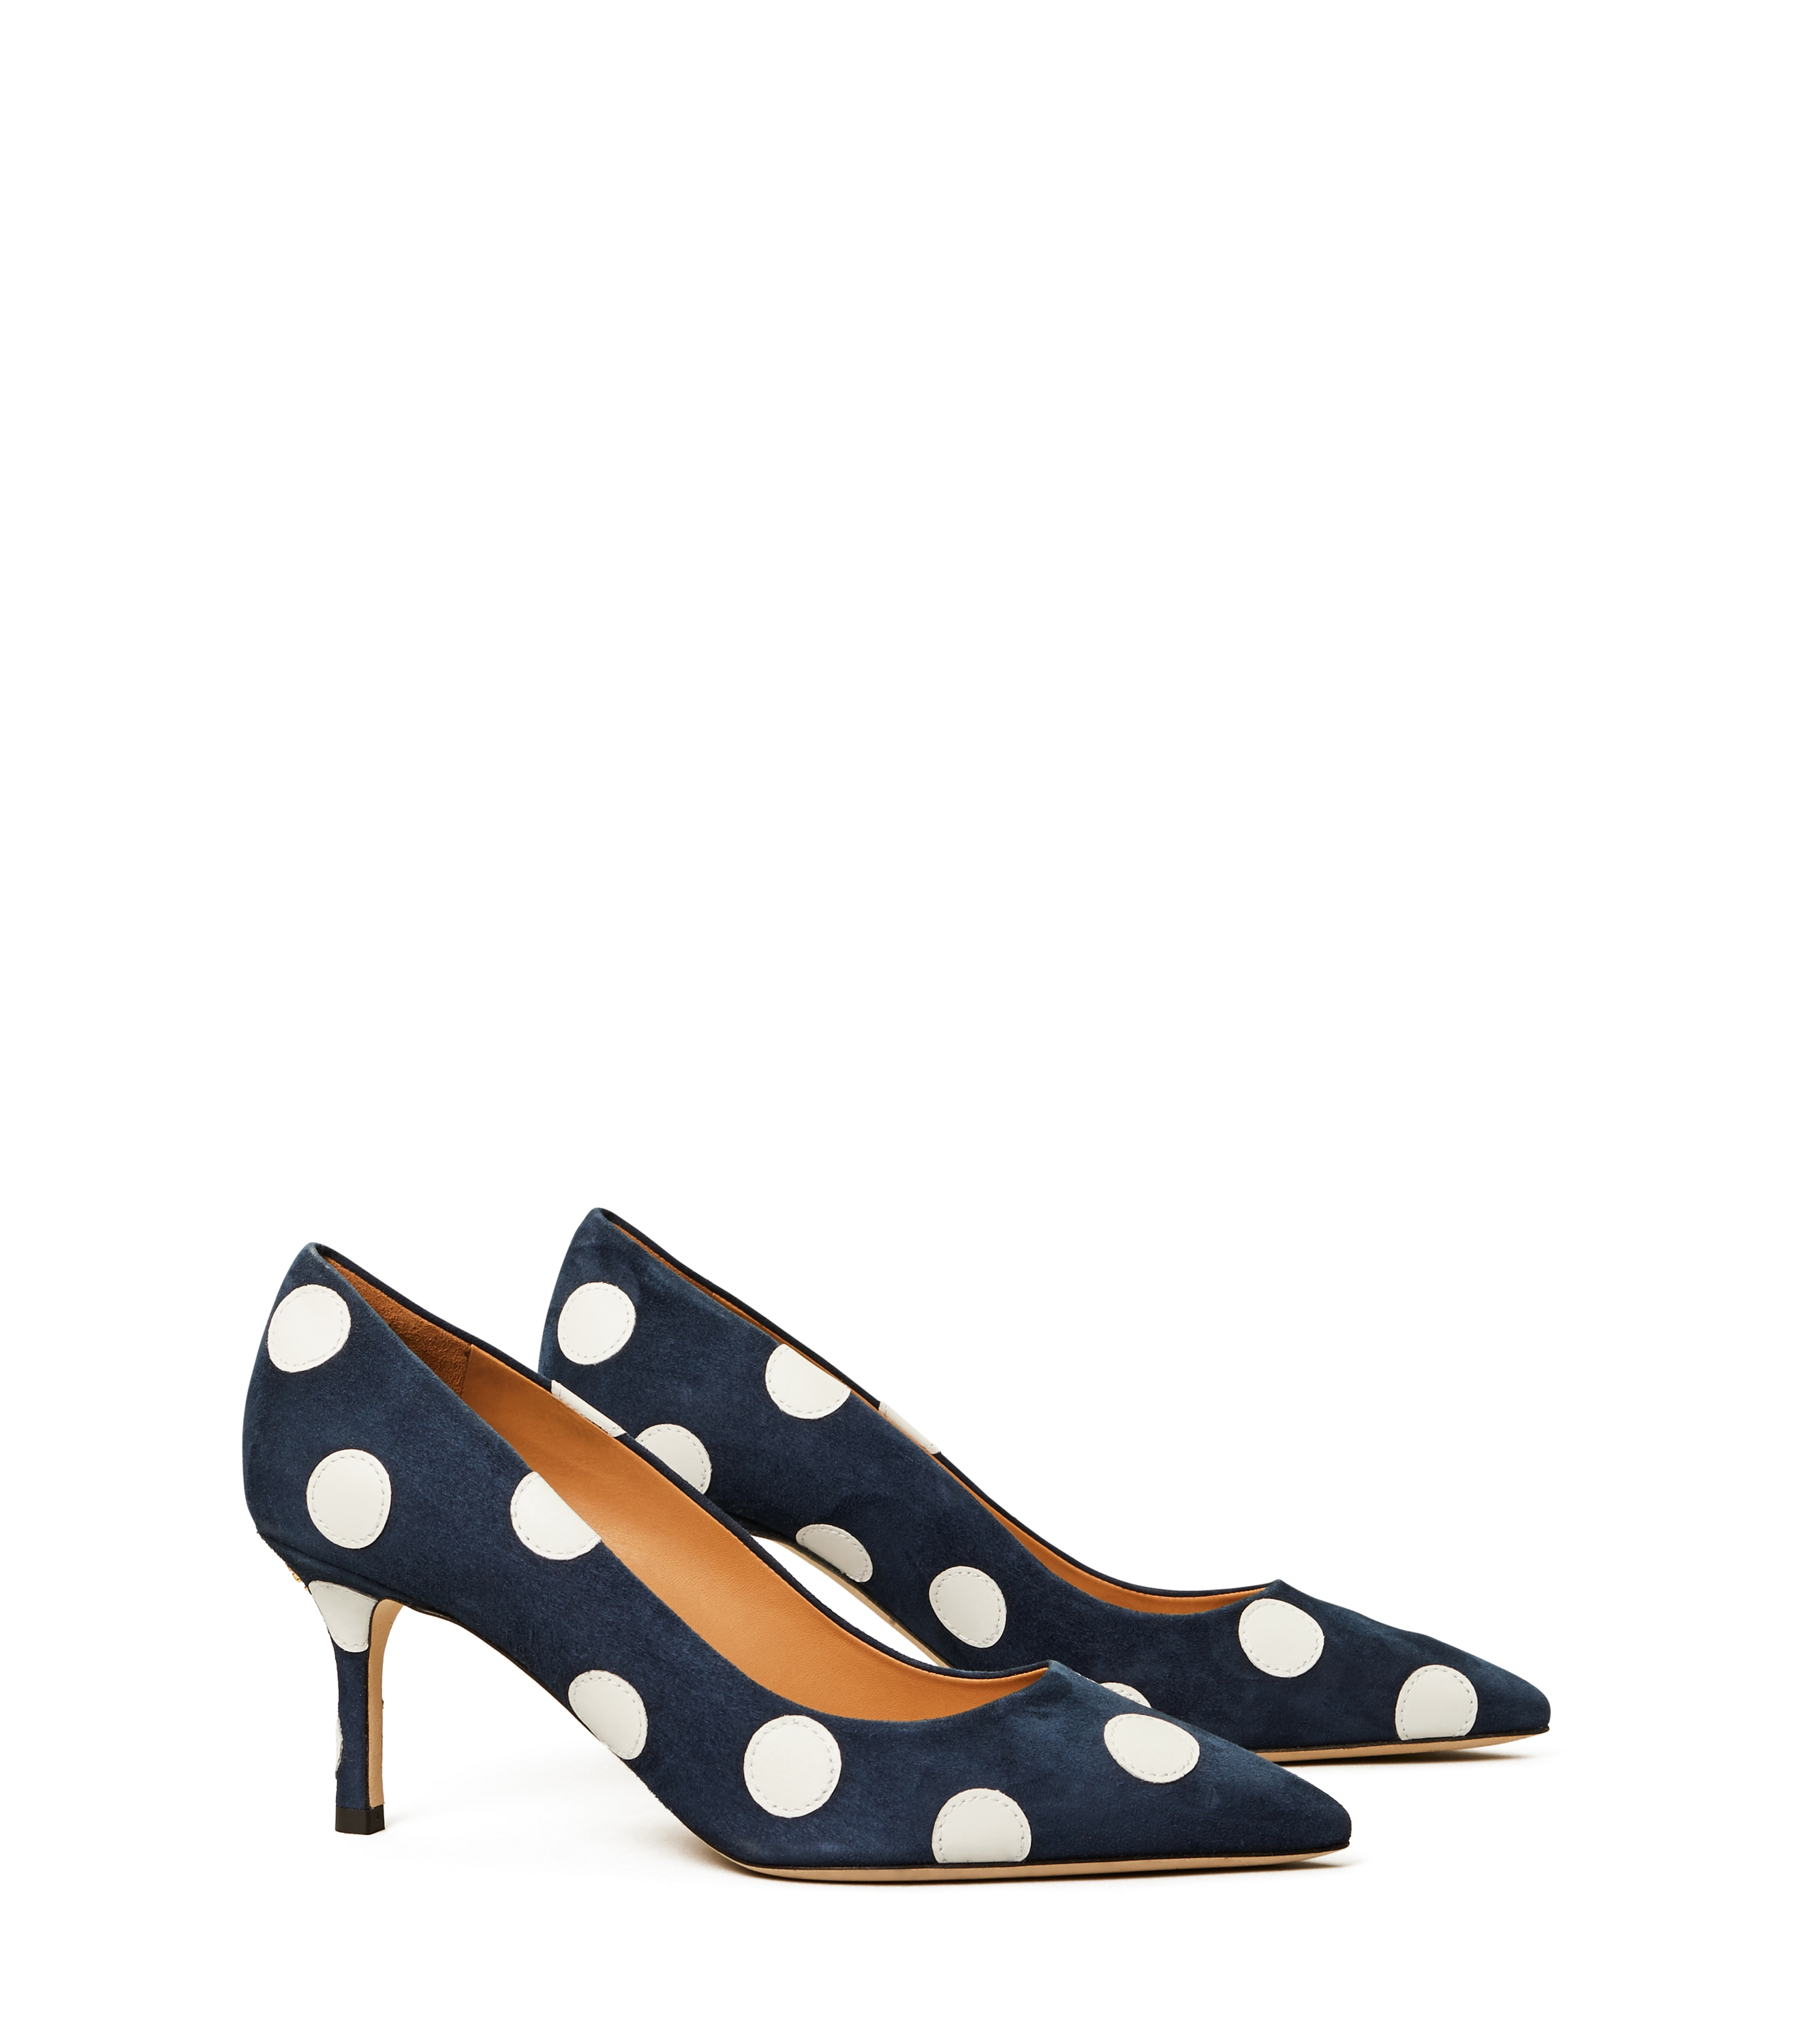 Tory Burch PENELOPE 65MM PUMP